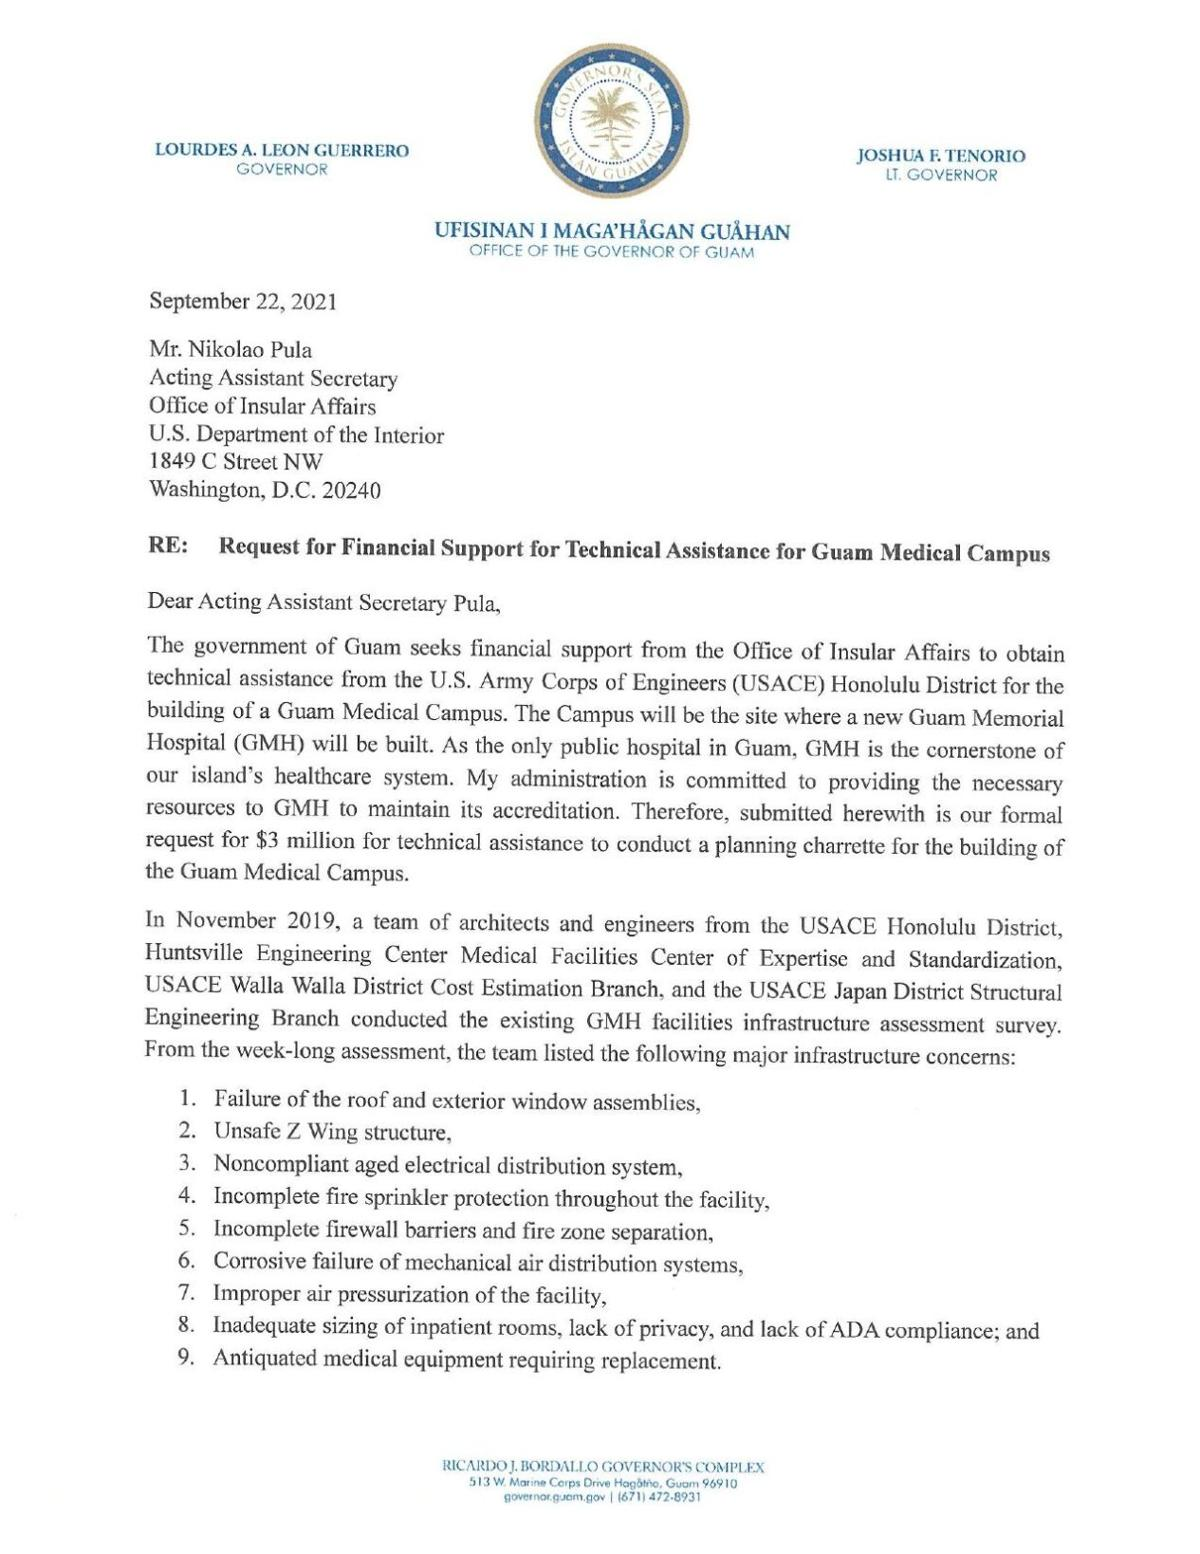 092221_OIA_Nikolao Pula Re-Request for Financial Support for Technical Assistance for Guam Medical Medical Campus.pdf